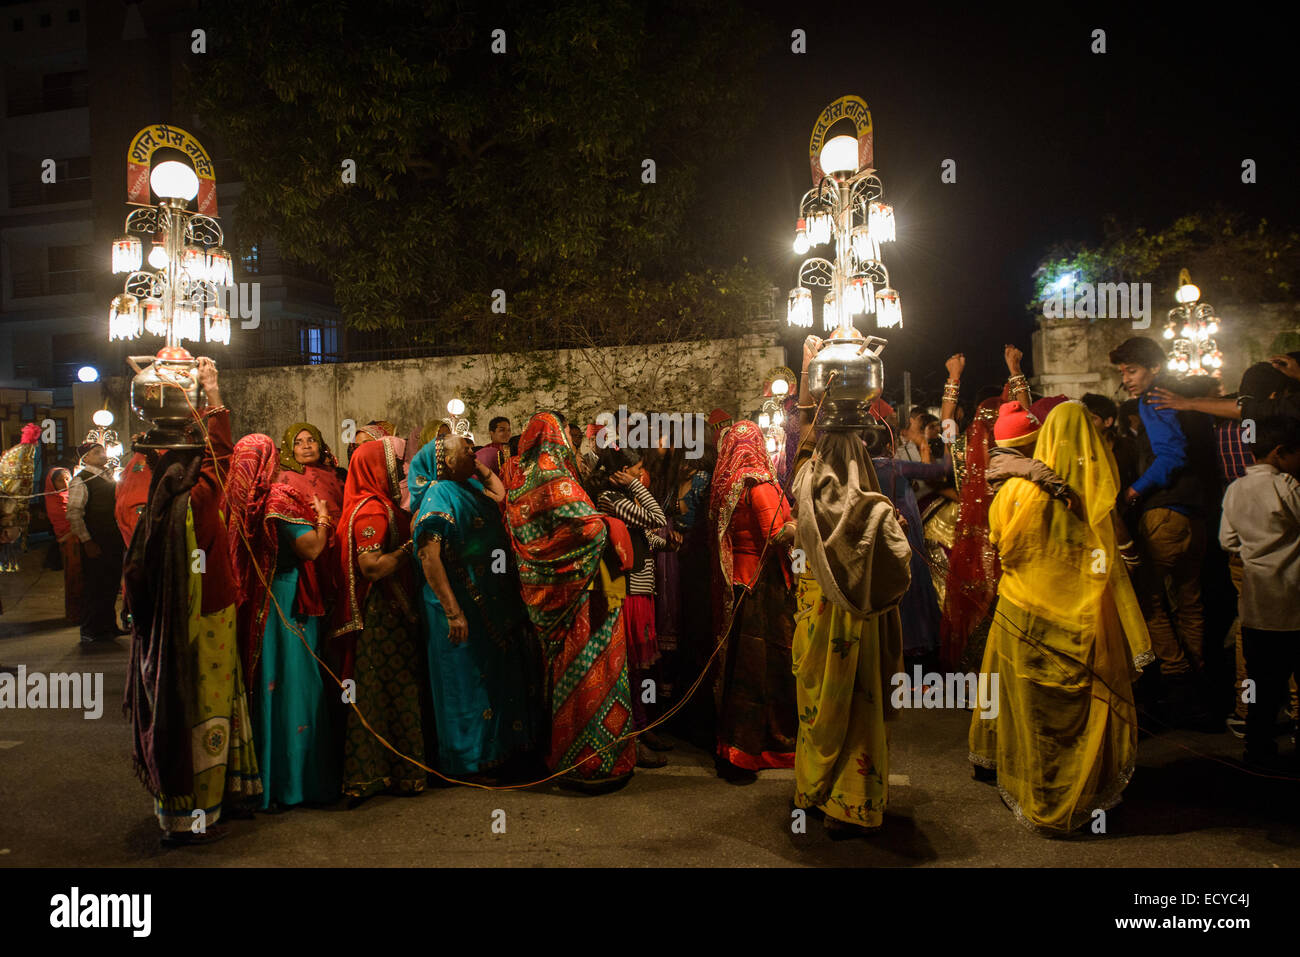 Indian wedding procession jaipur india stock photo 76819586 alamy indian wedding procession jaipur india junglespirit Images